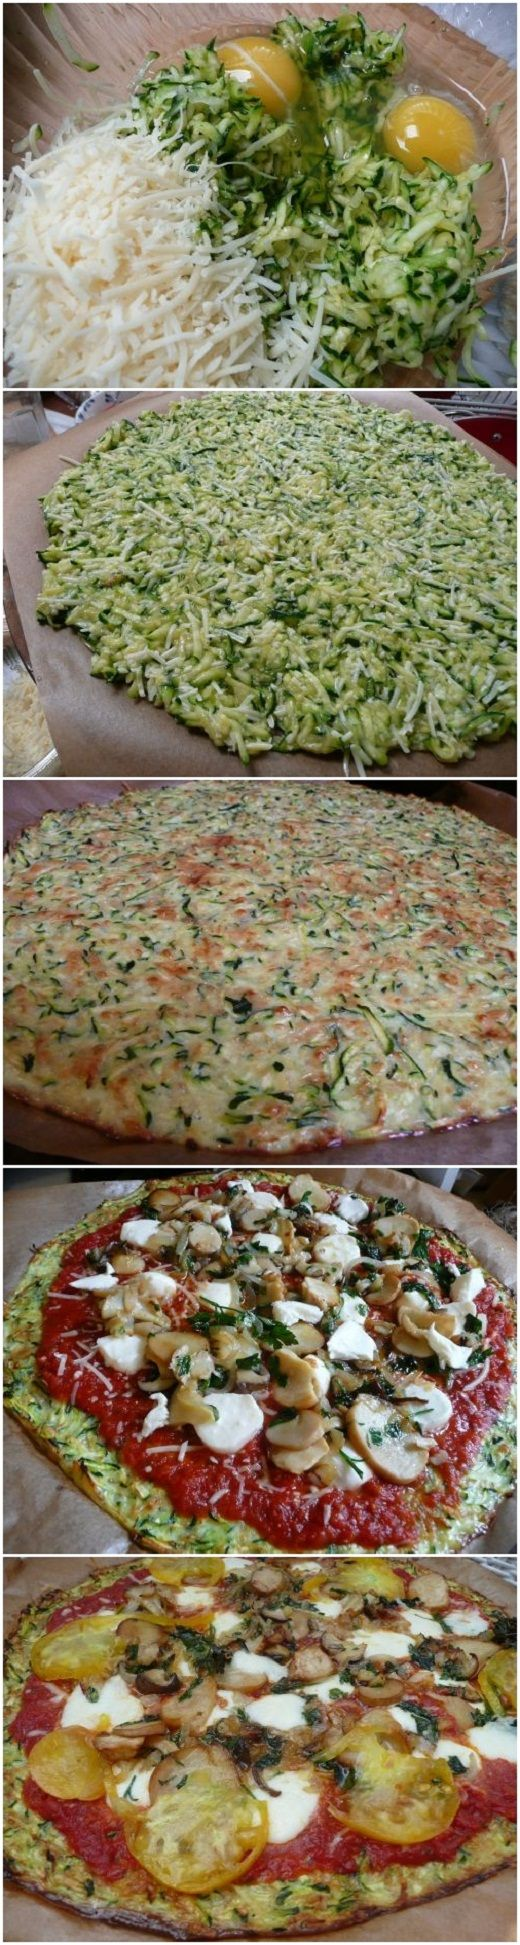 70+ Easy Healthy Dinner Recipes For a Guilt-Free Meal – Page 2 of 3 – Cute DIY Projects